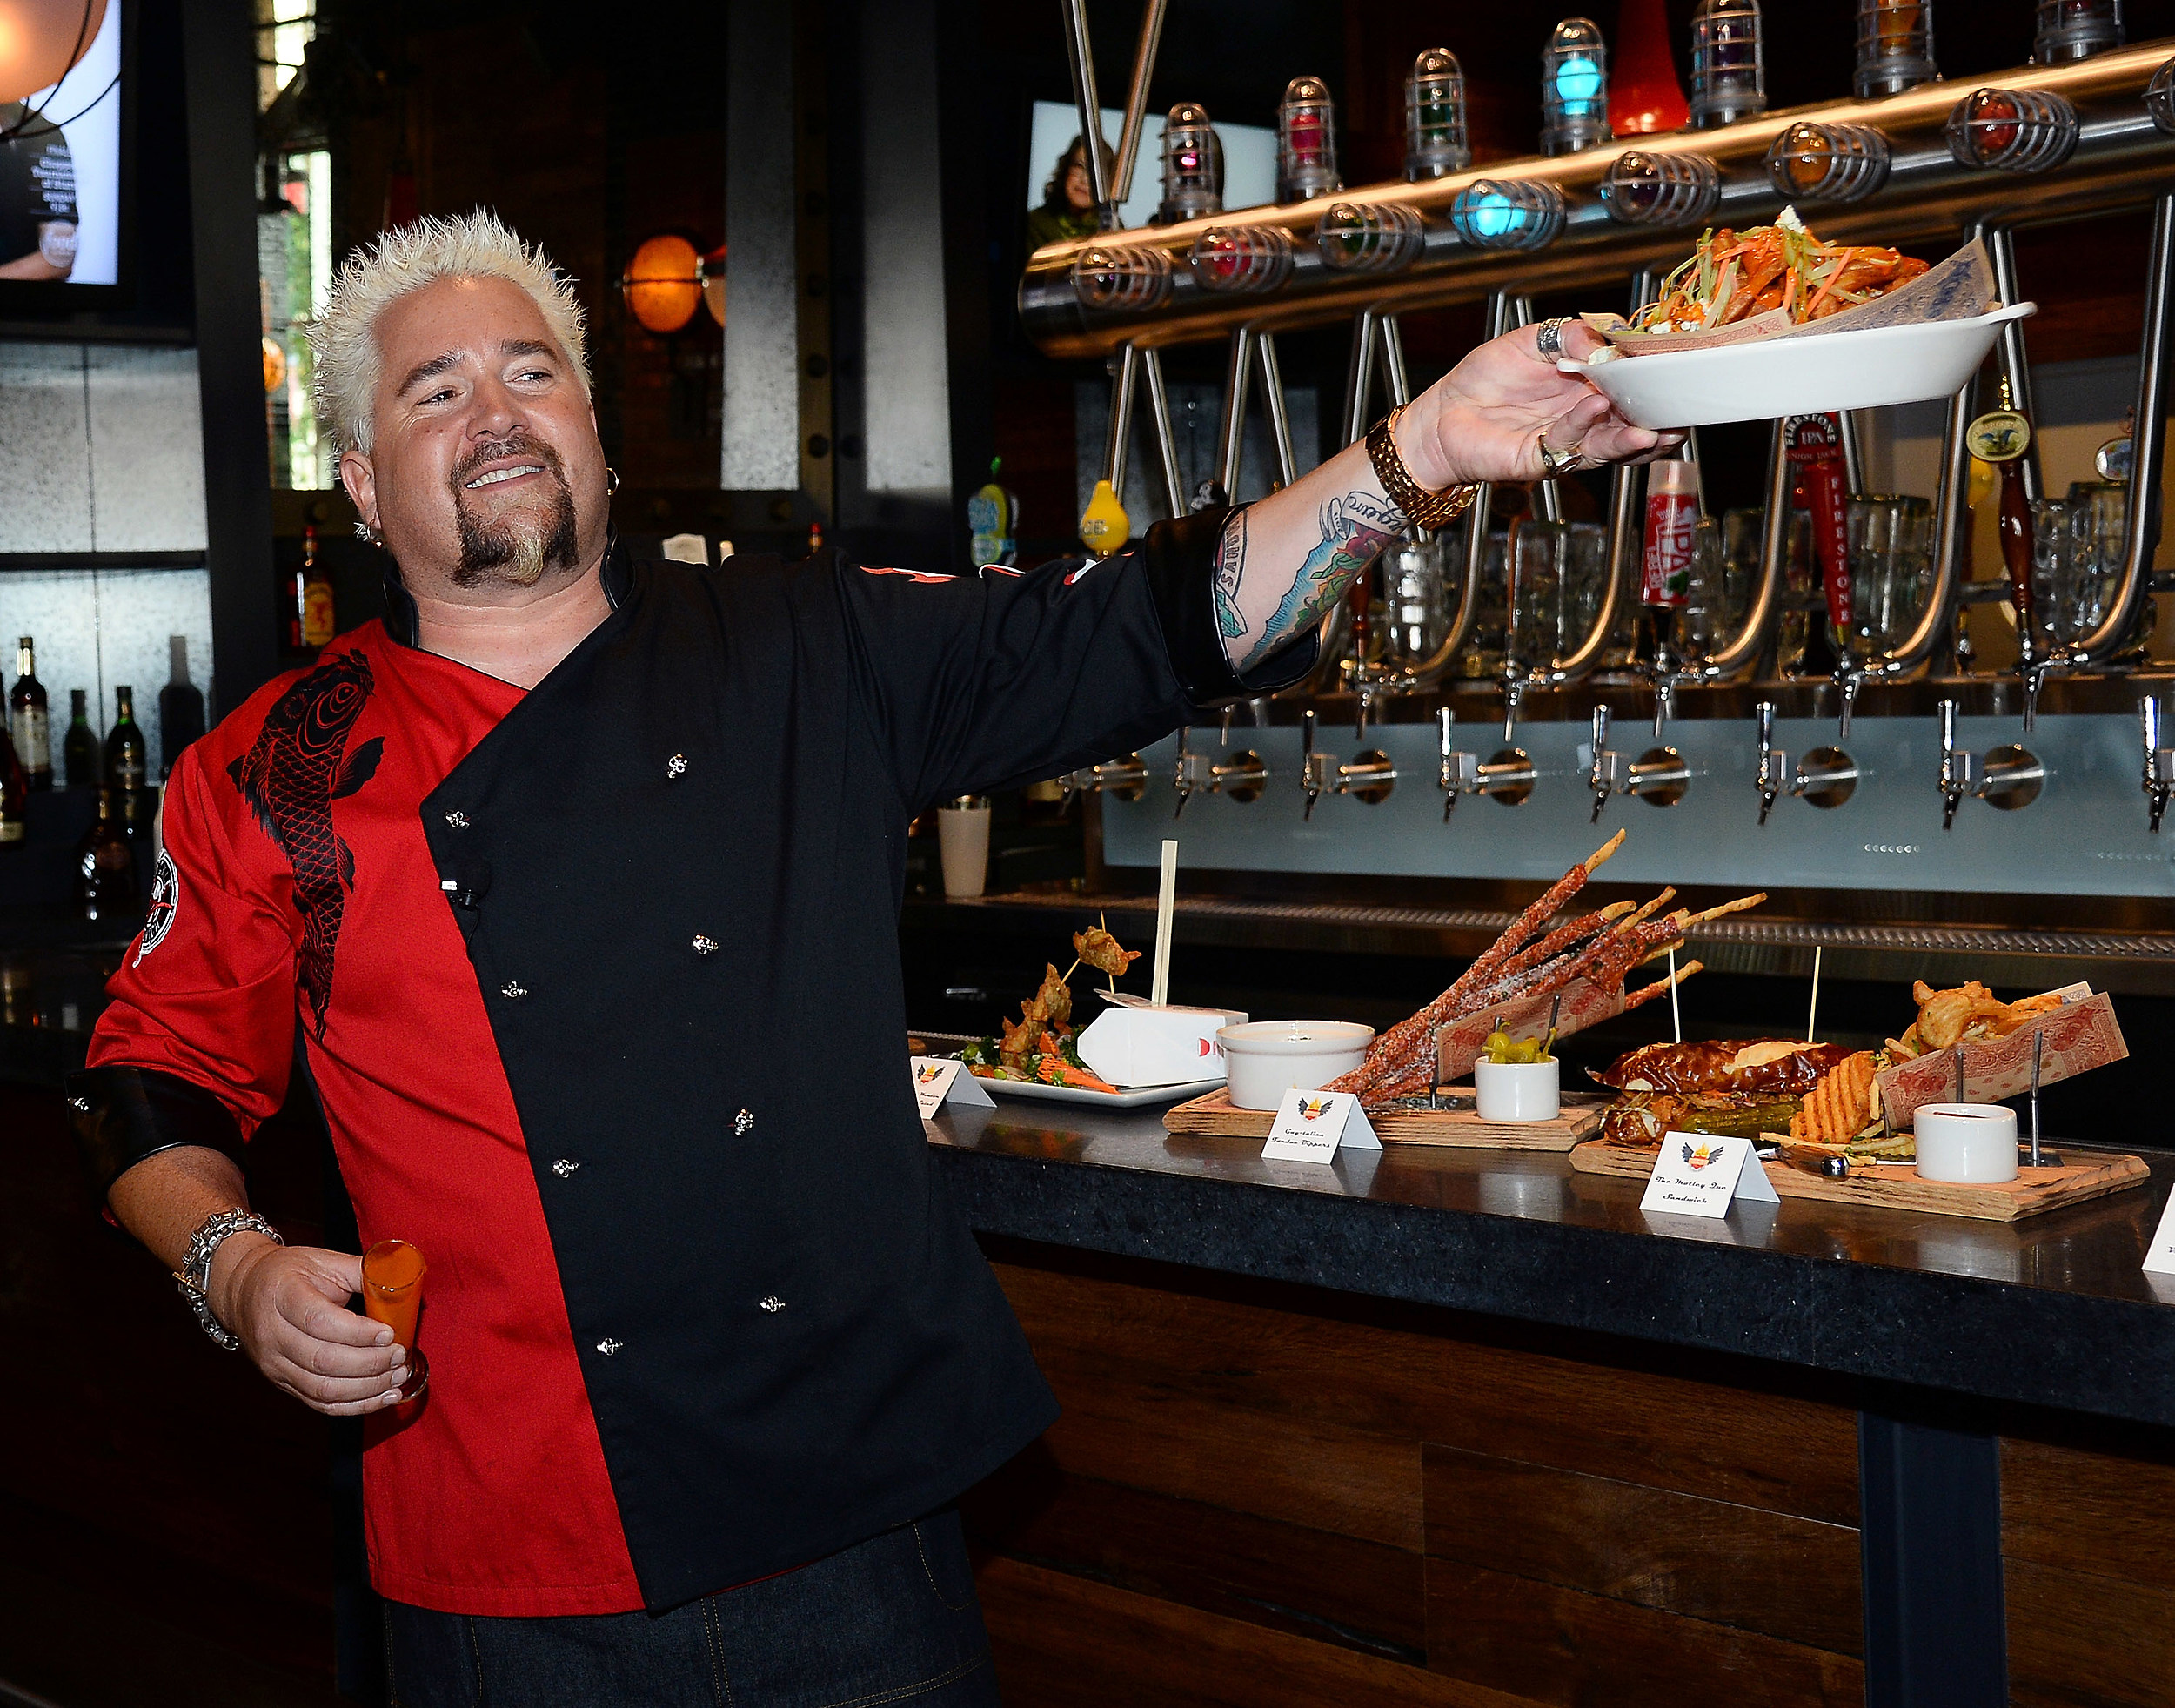 Guy Fieri's Vegas Kitchen & Bar Welcome Event